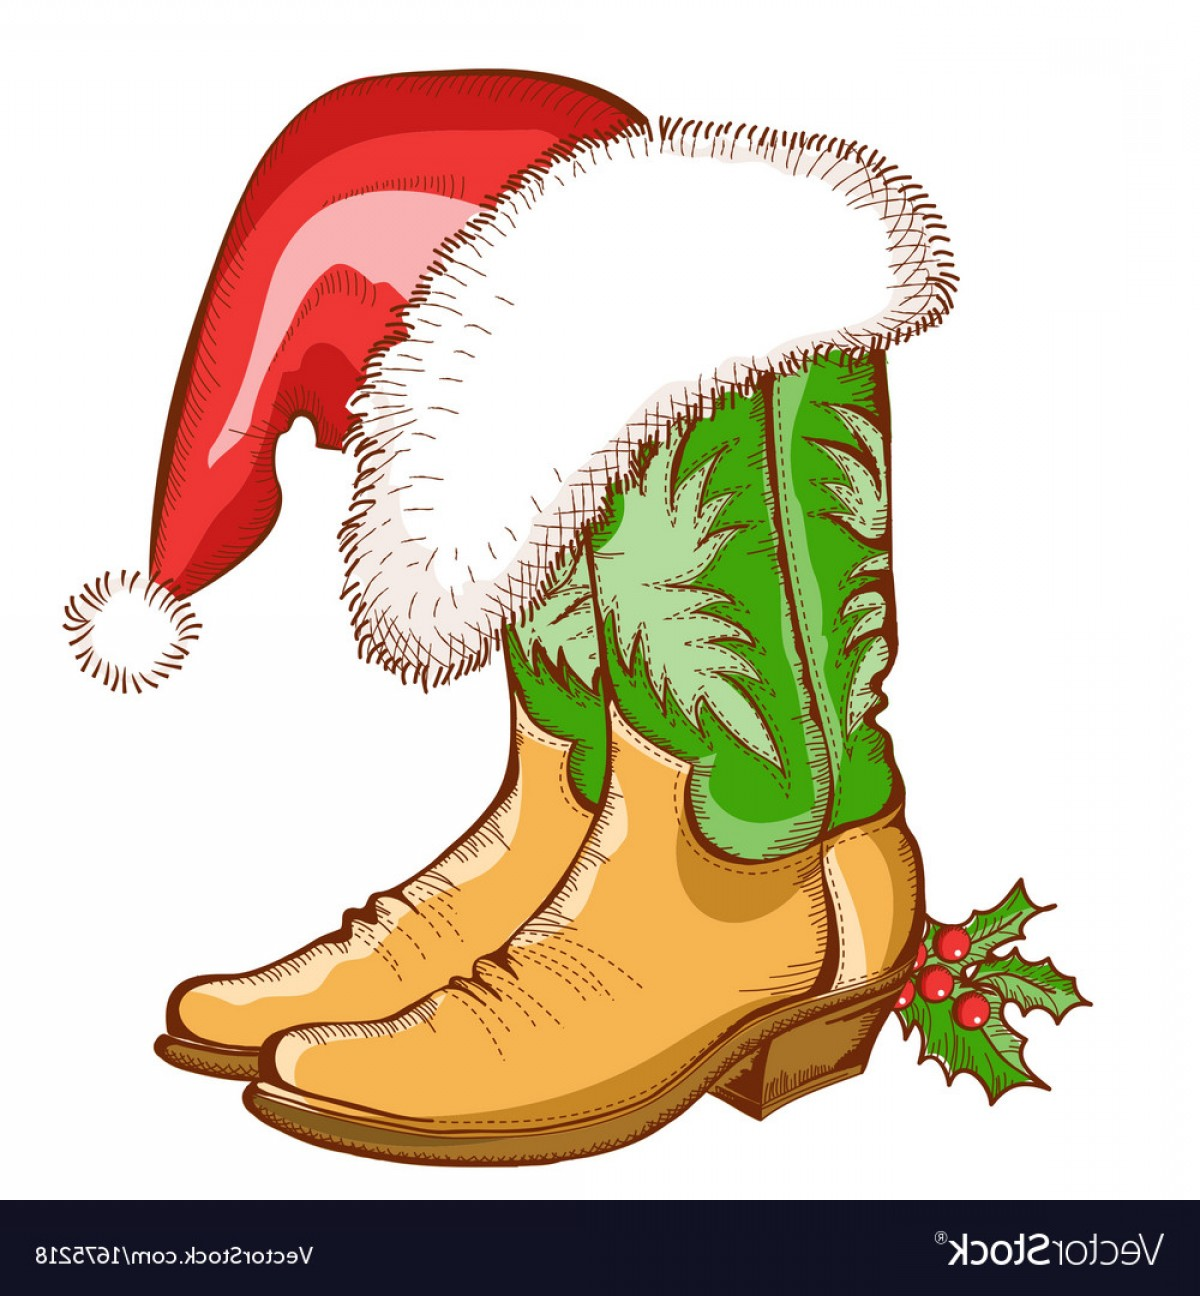 Stocking Hat Vector: Attractive Christmas Cowboy Boots And Santa Hat Vector